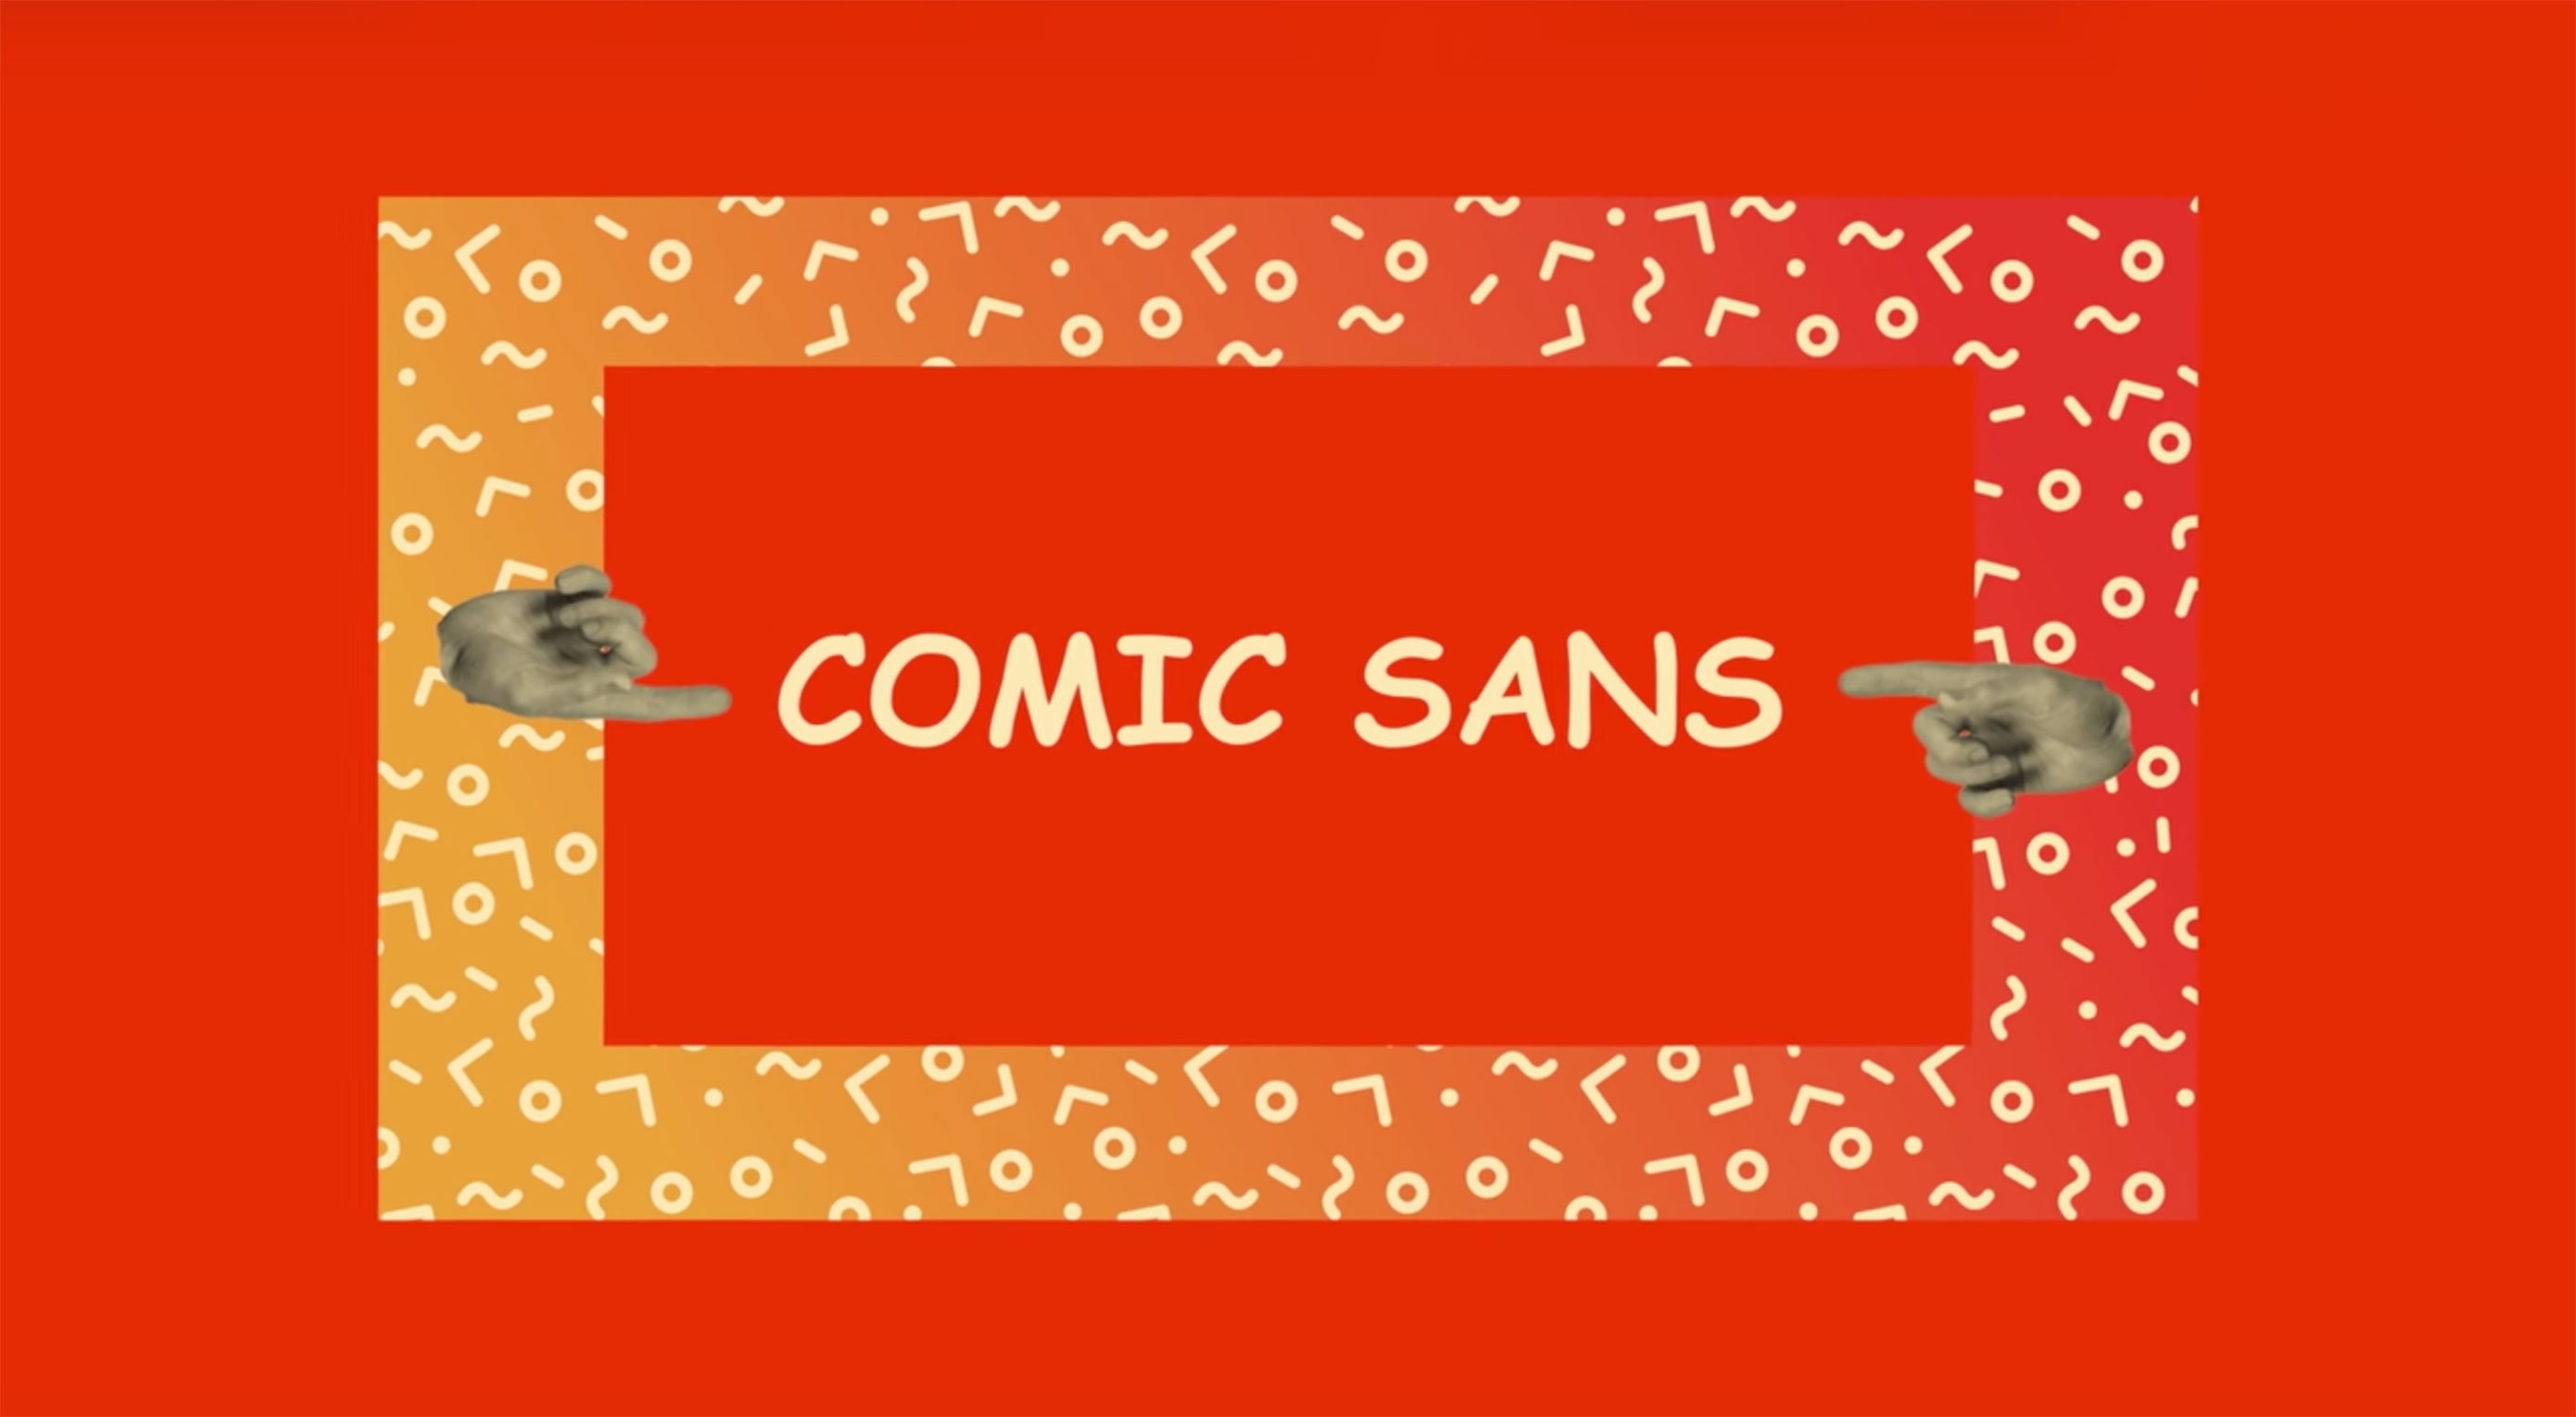 Meet the man behind Comic Sans